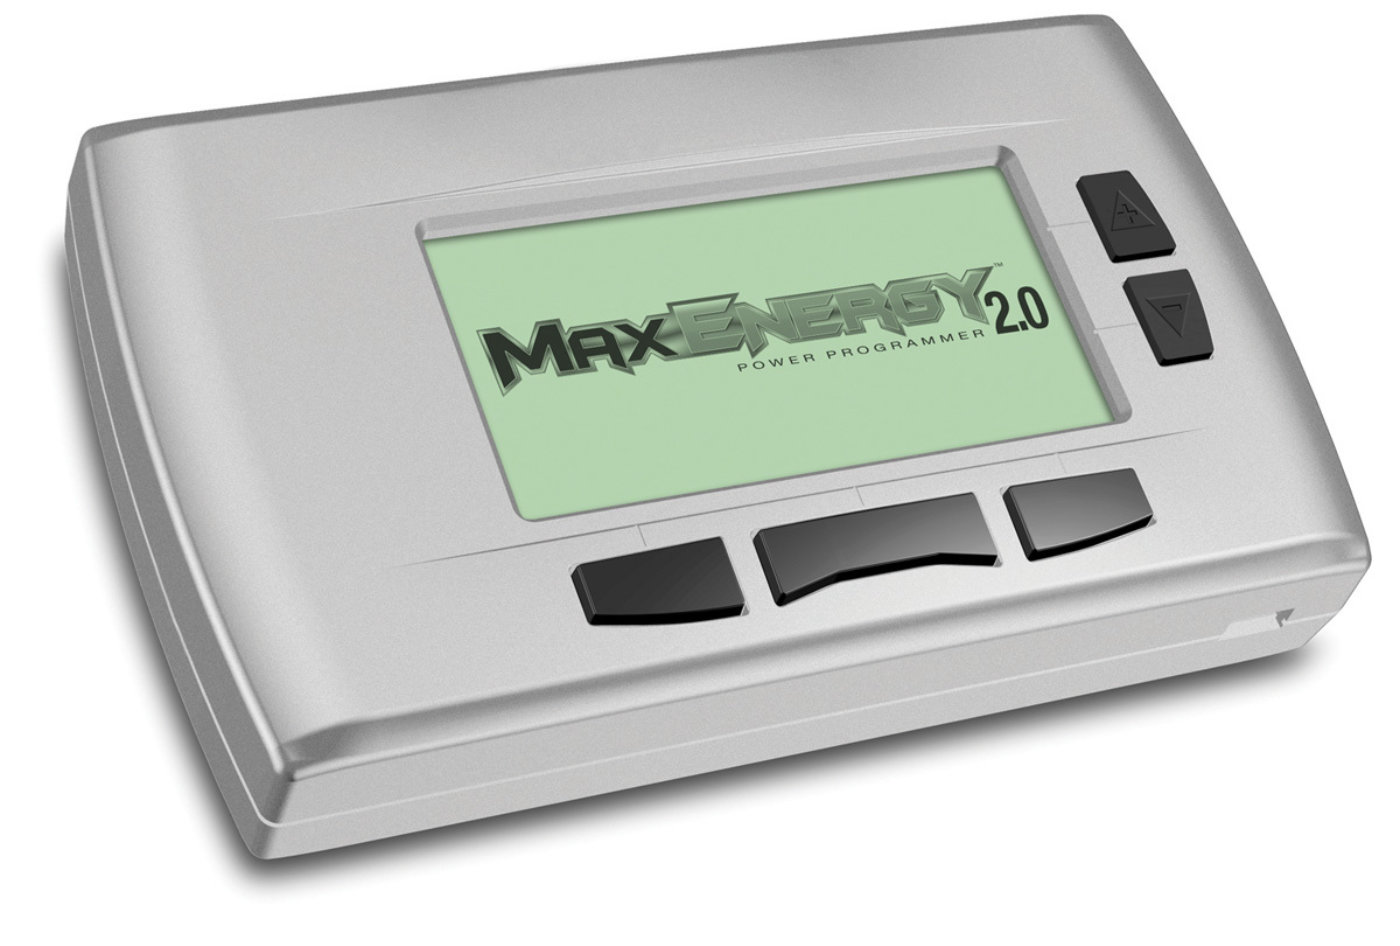 Hypertech Max Energy Power Programmer